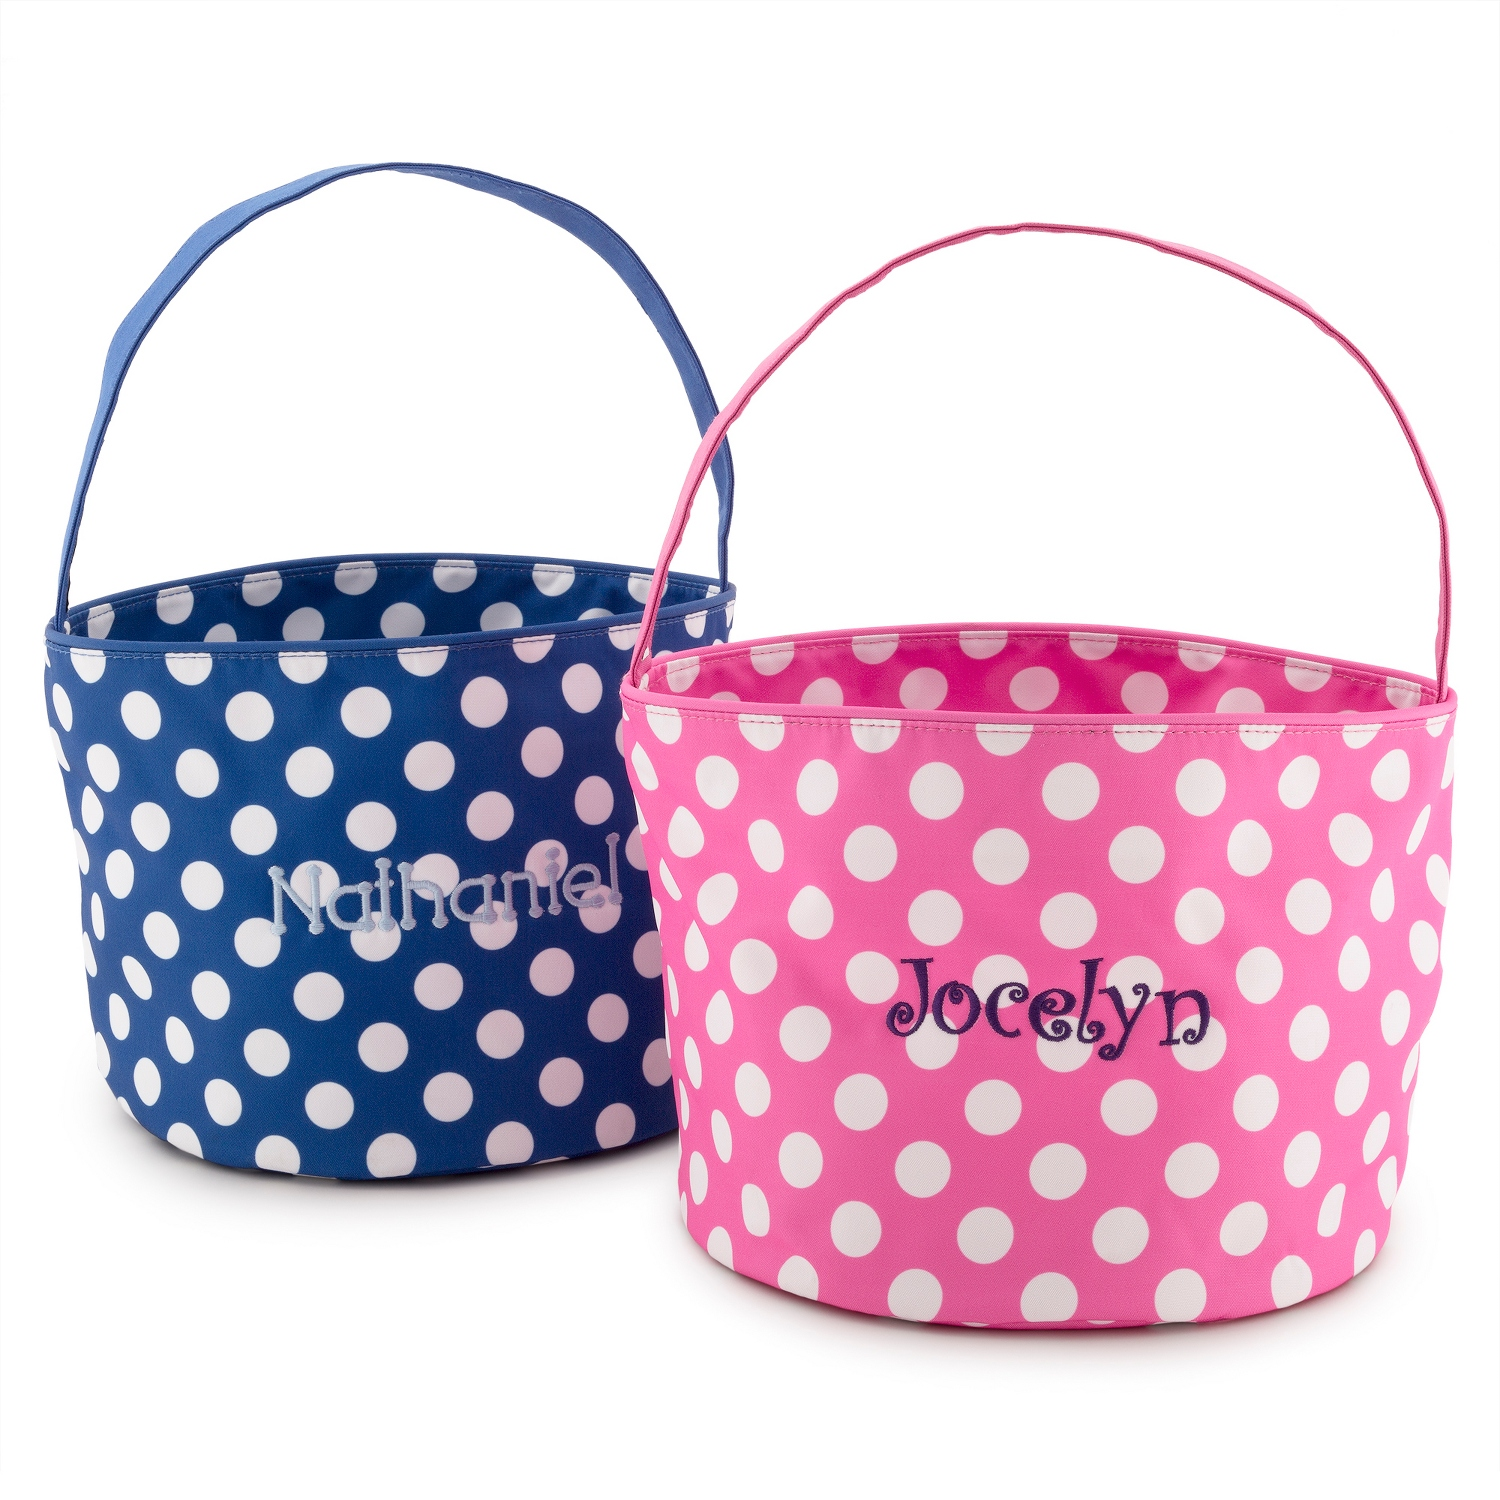 Personalized easter gifts for kids at things remembered polka dot toy totes negle Images